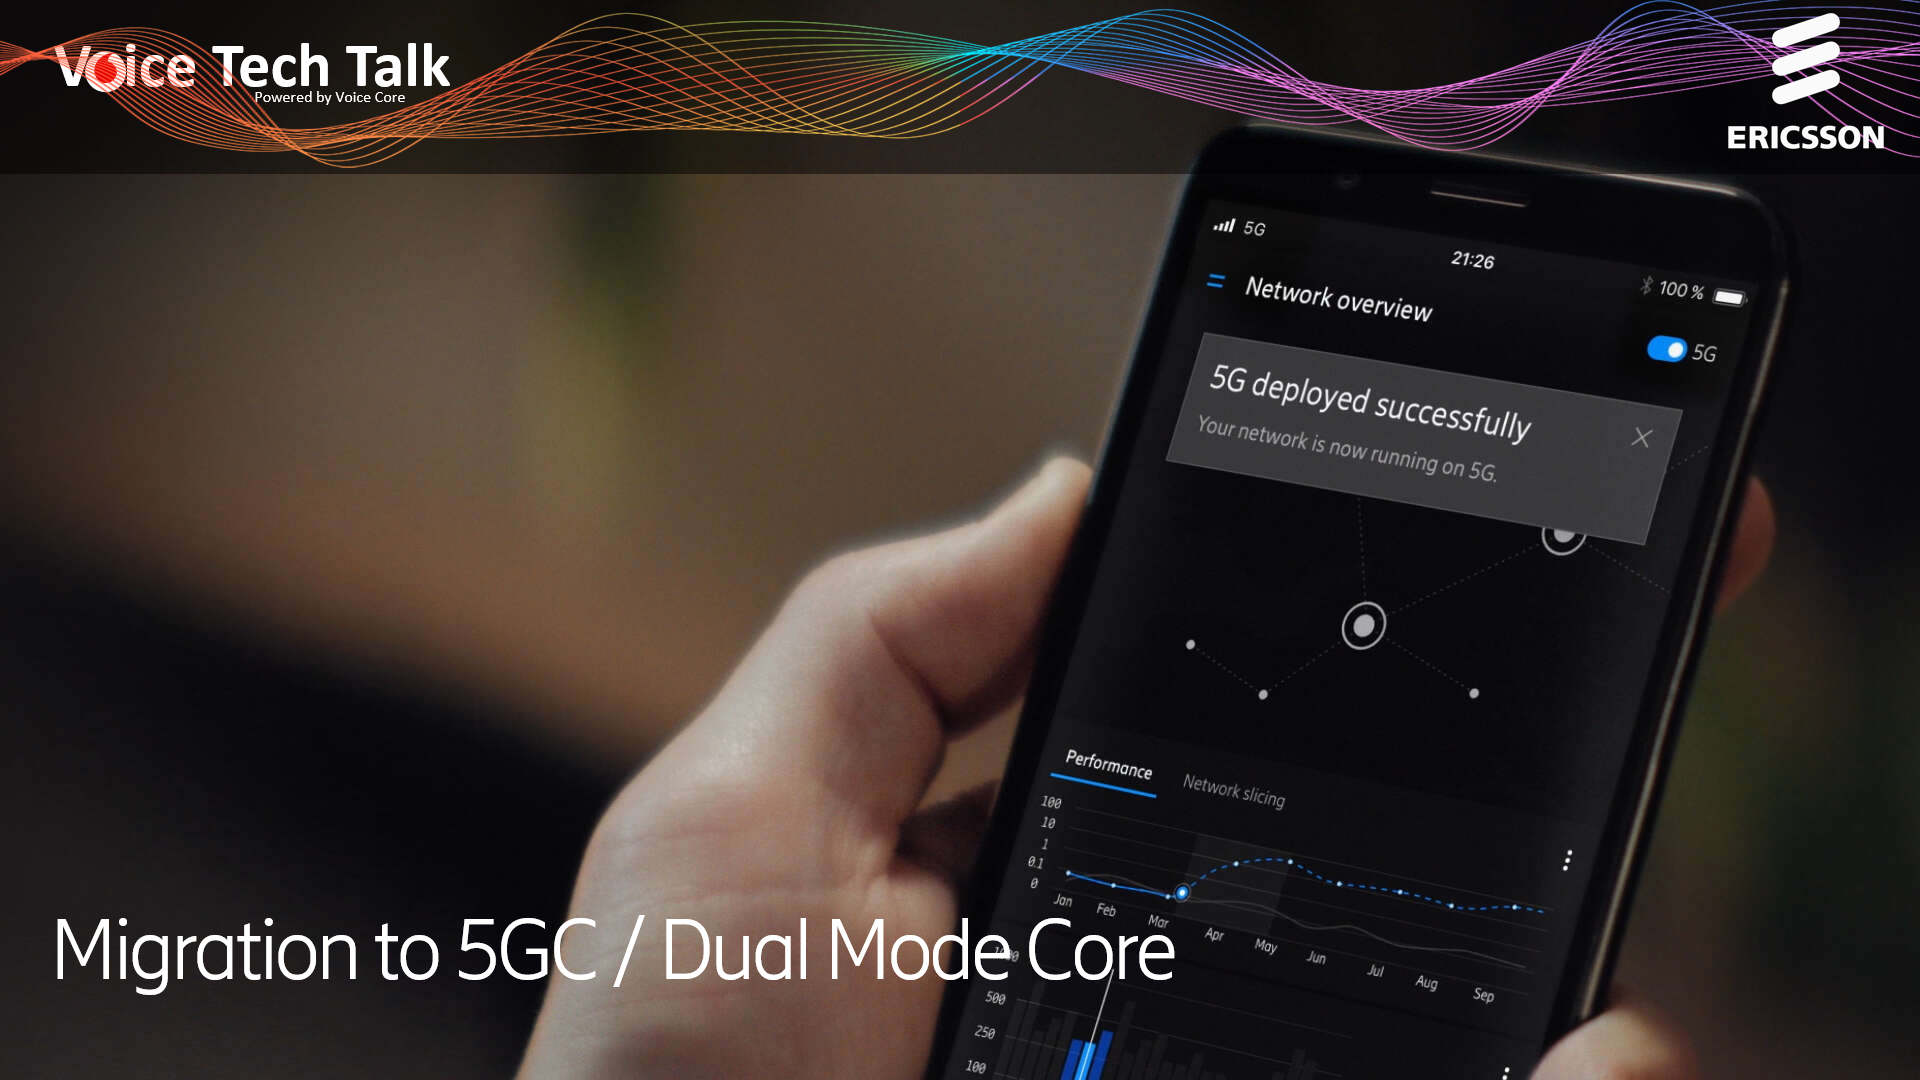 Migration to 5GC / Dual Mode Core